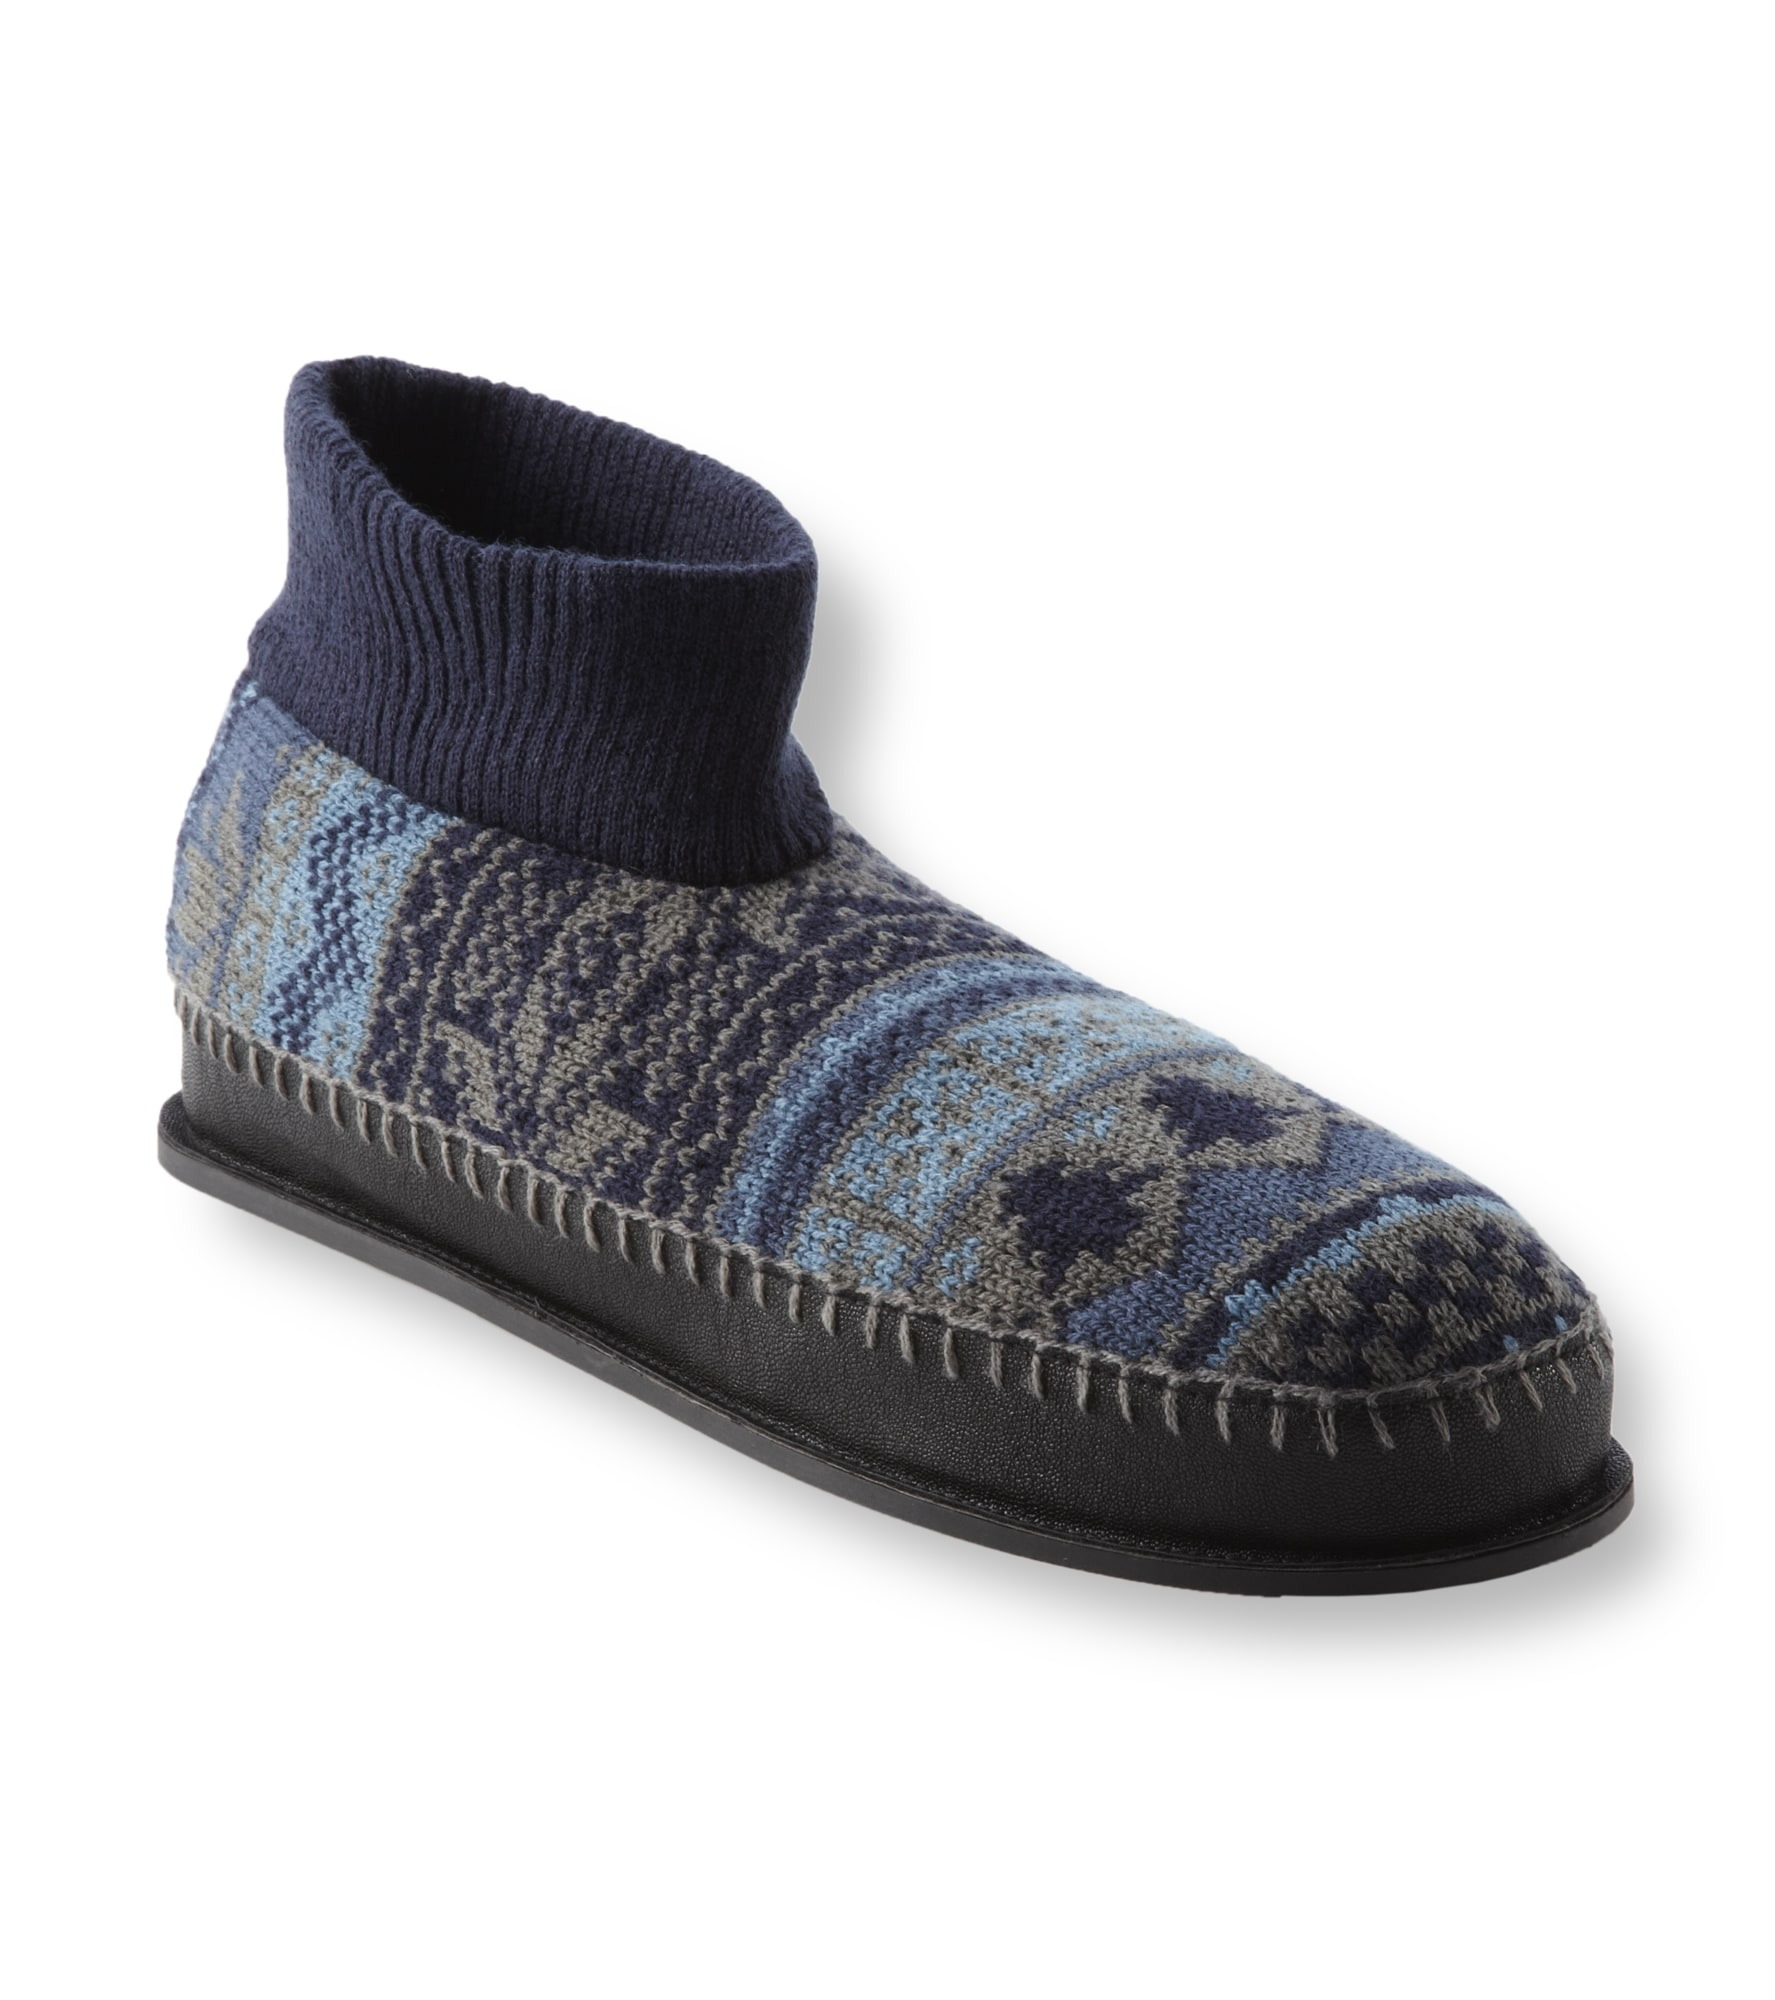 Muk Luks Men's 'Cullen' Blue Nordic Knit Ankle Slippers